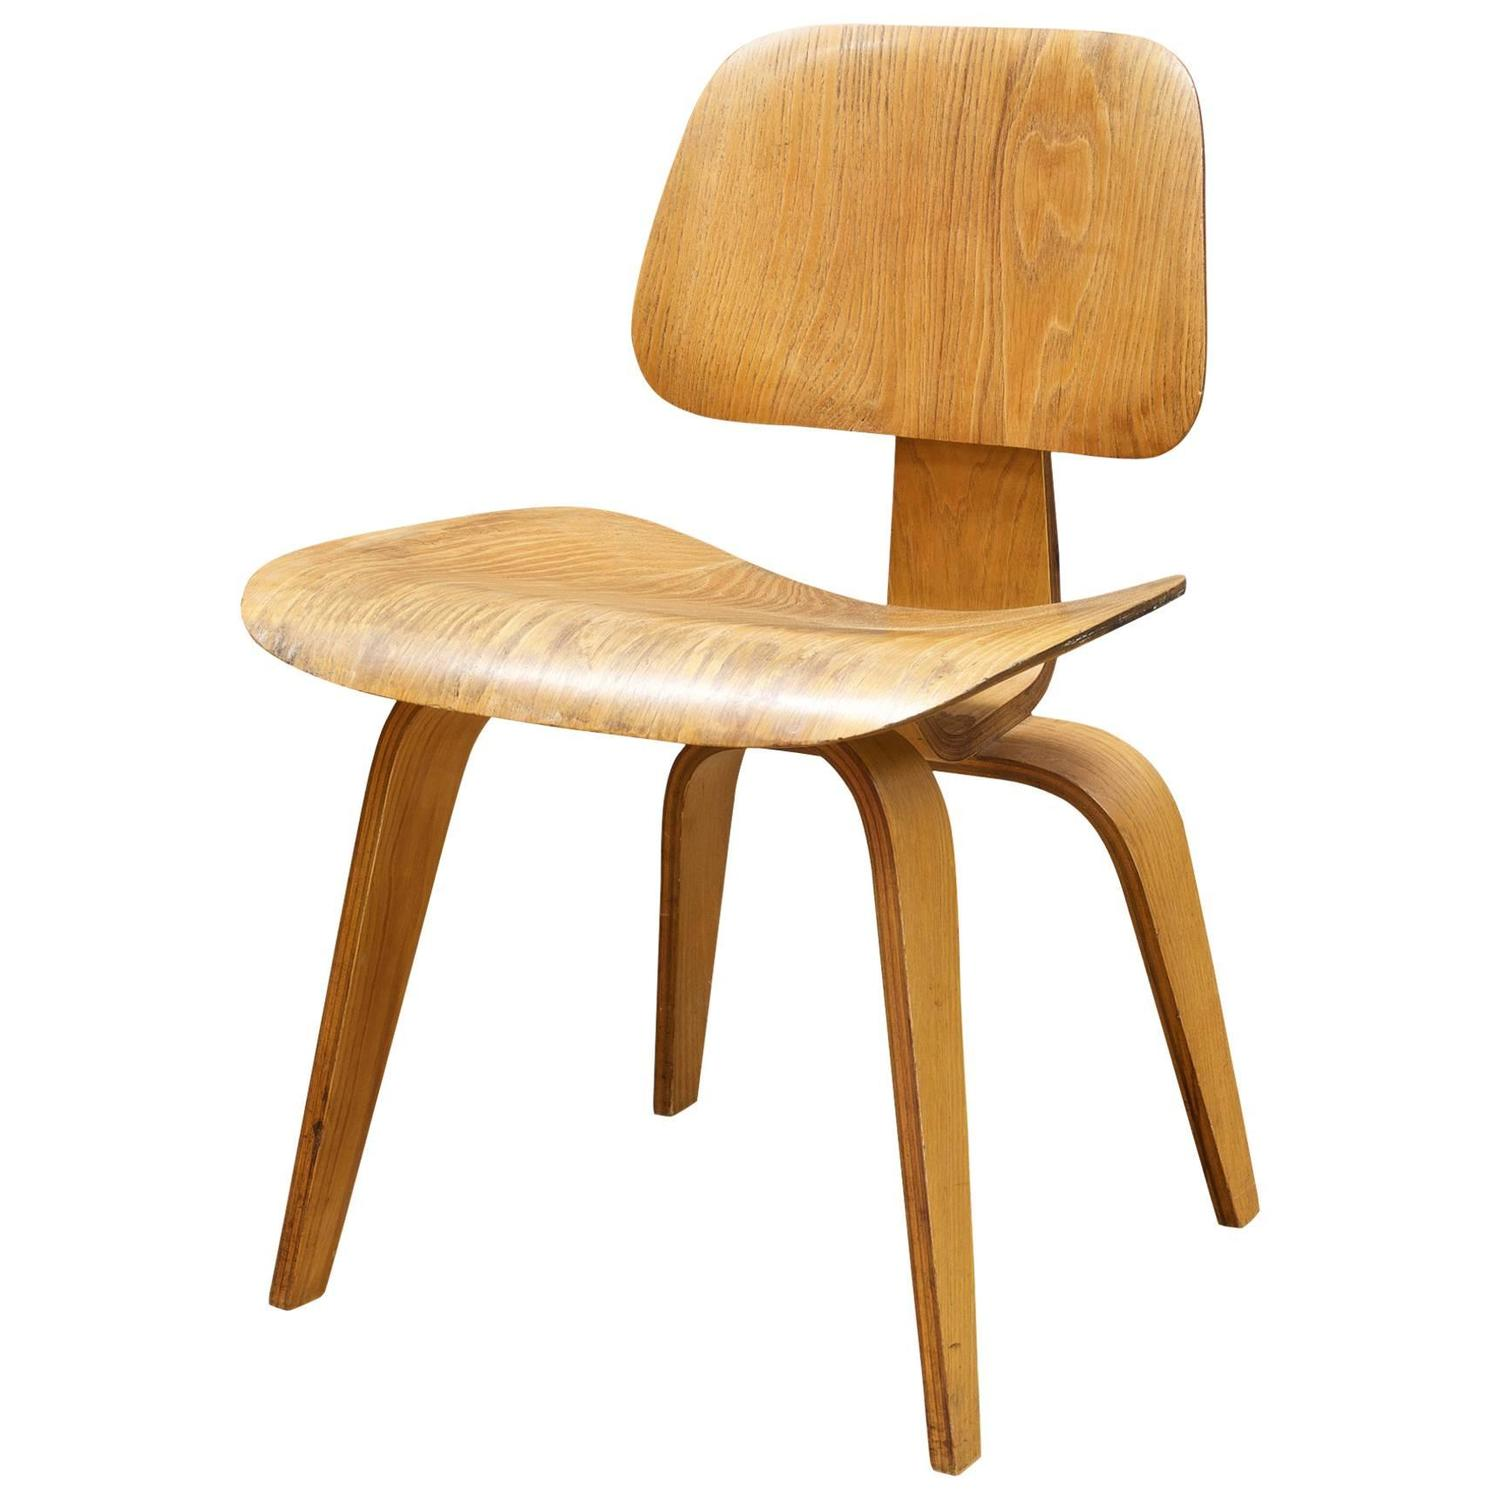 Bent Plywood Chair 1948 Charles Eames Evans Bent Plywood Herman Miller Dining